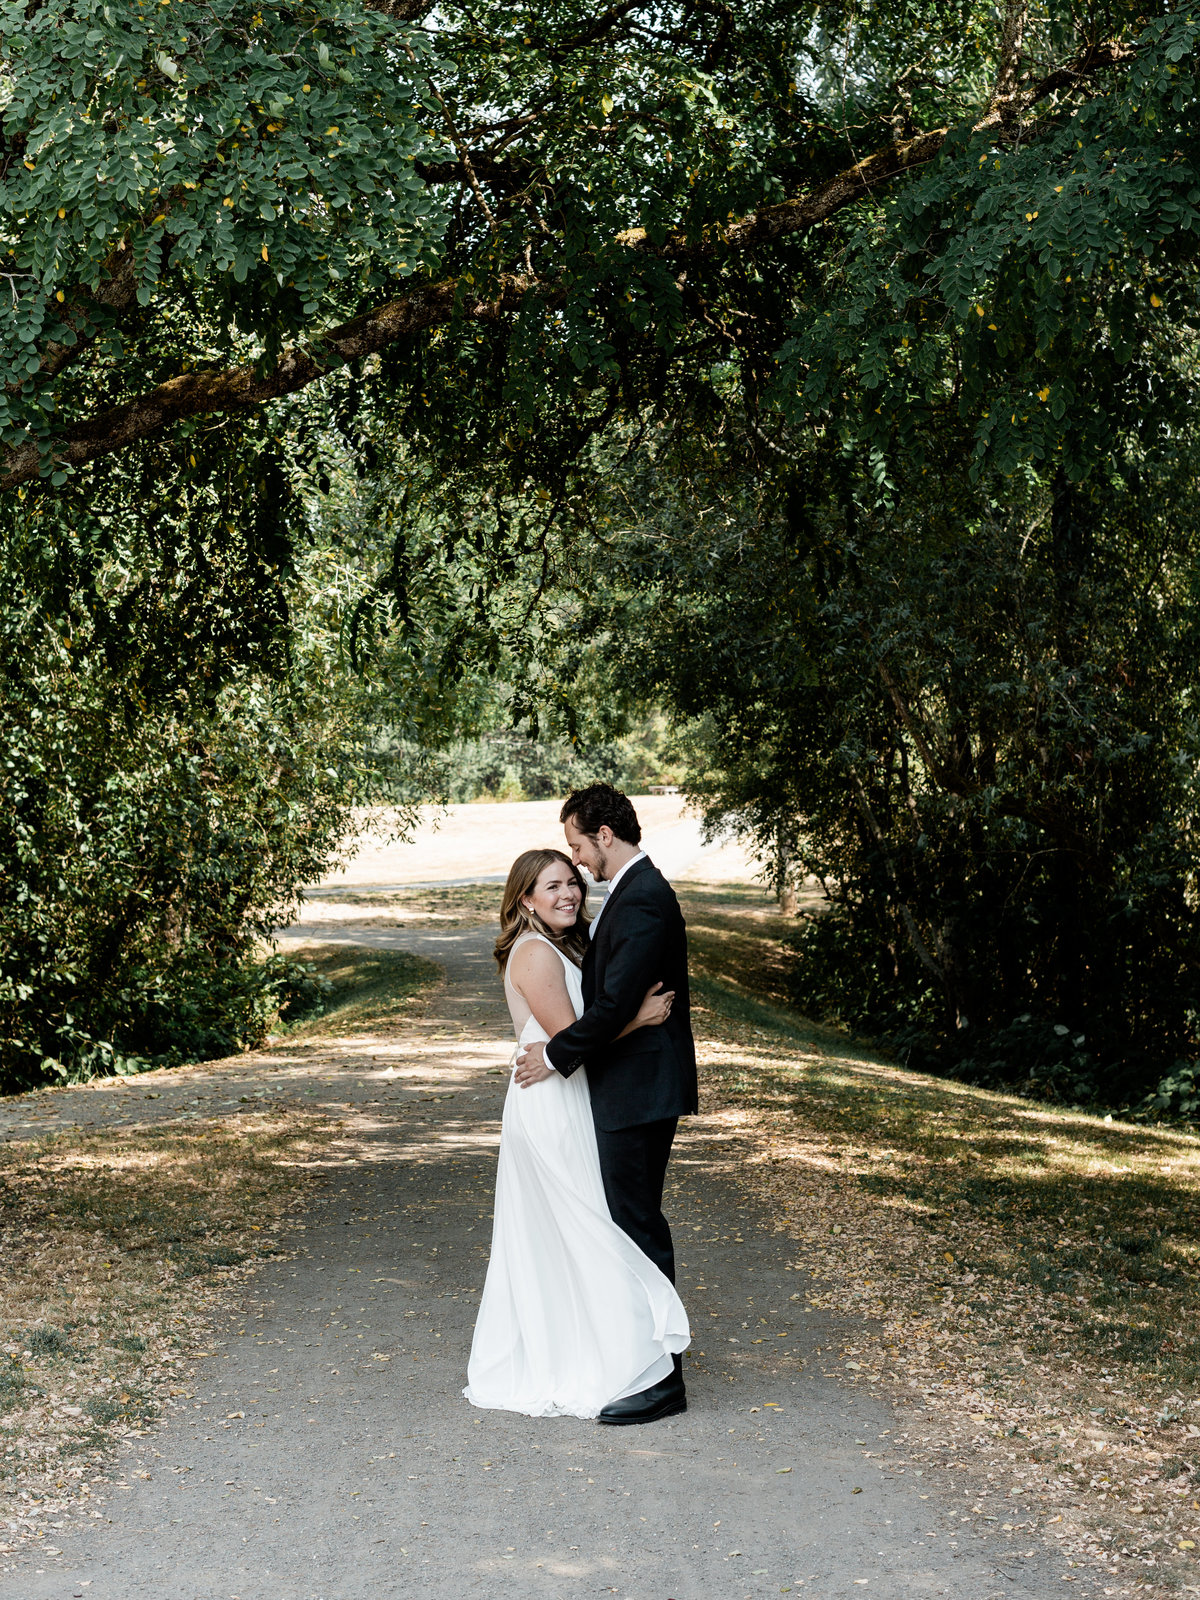 alycia-lovell-photography-portland-seattle-wedding-photographer-0599